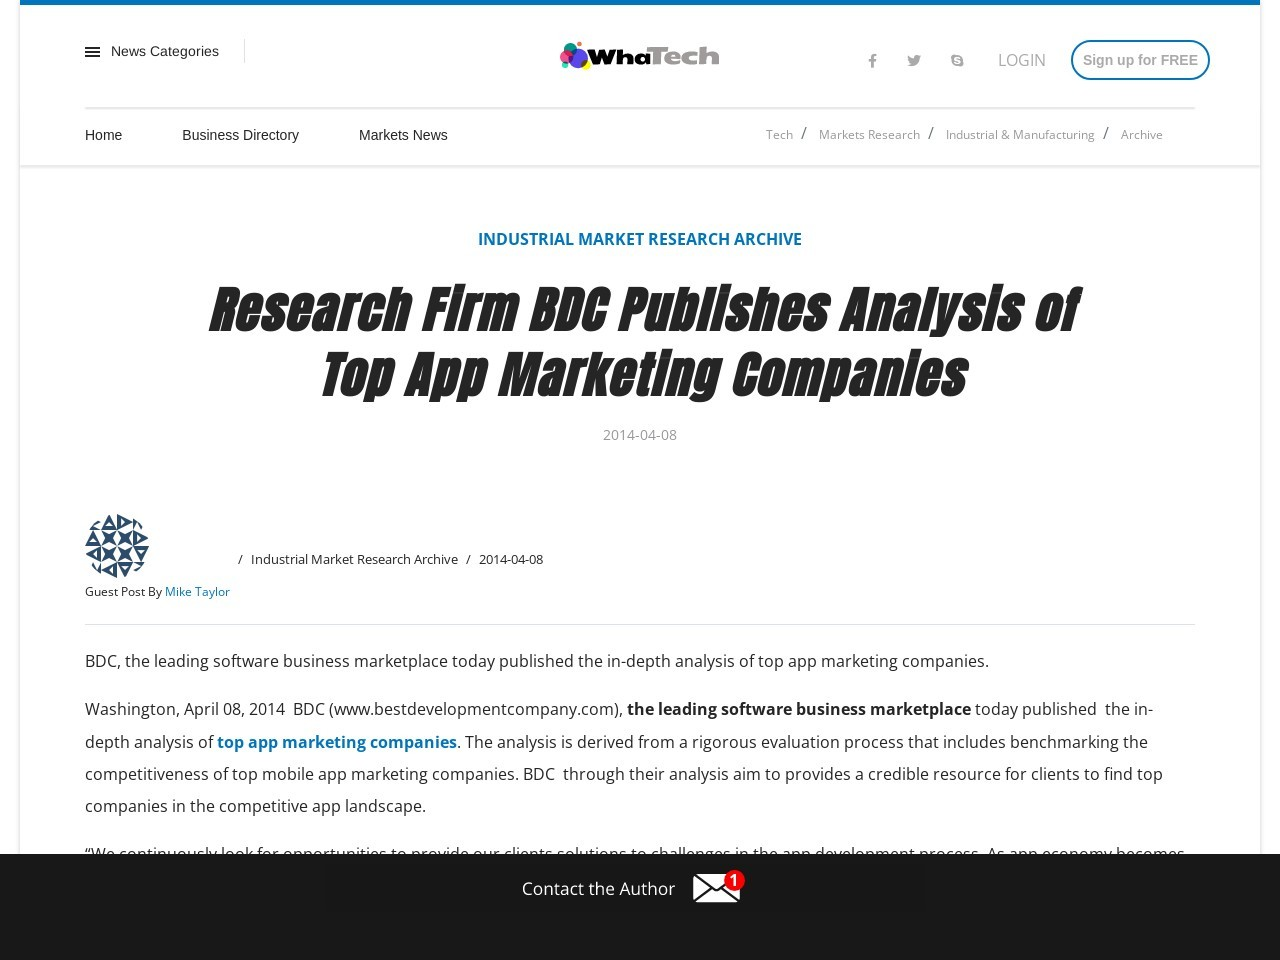 Research Firm BDC Publishes Analysis of Top App Marketing Companies